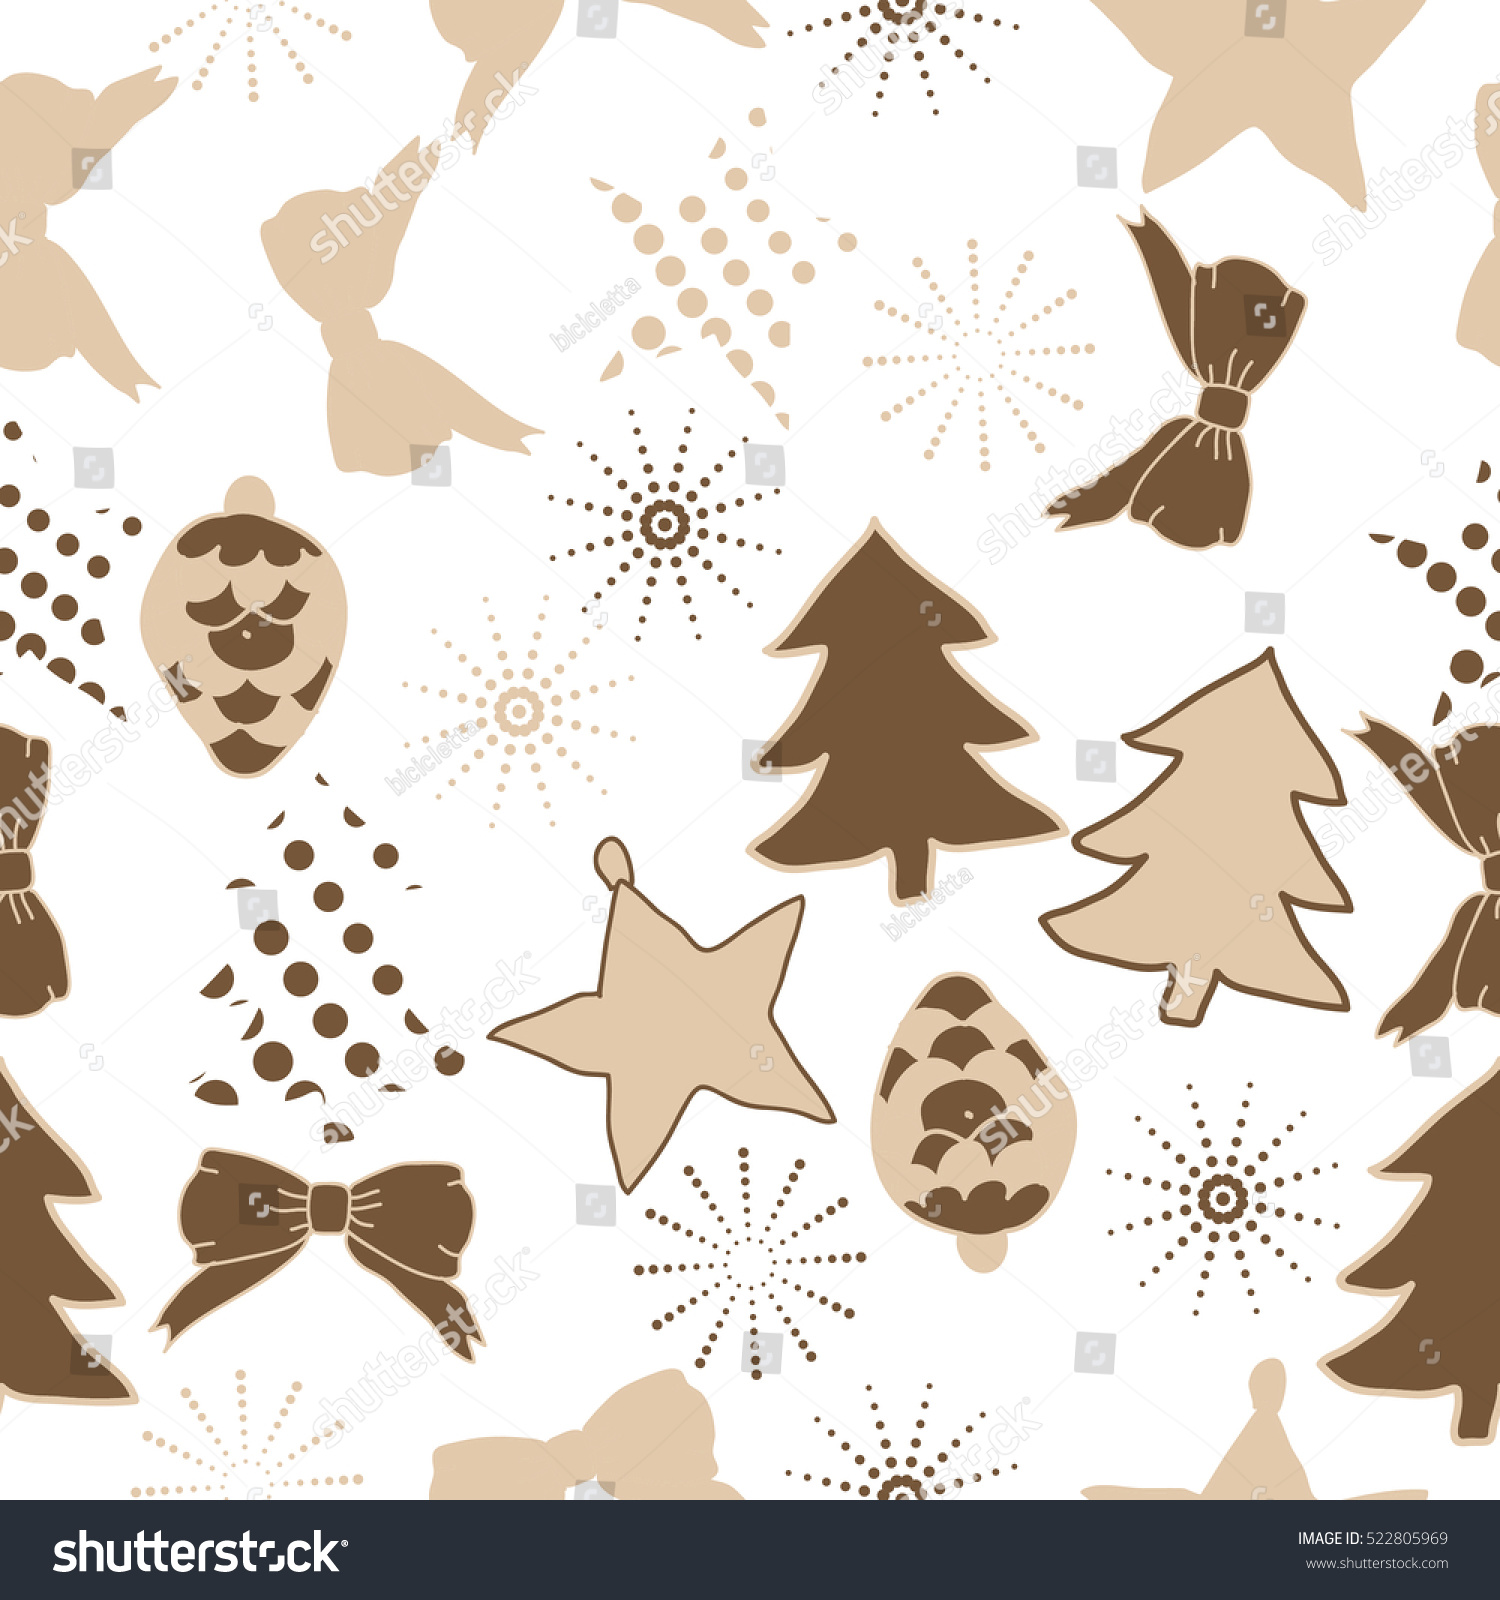 Seamless Pattern Of Christmas Decorations,Hand Drawn